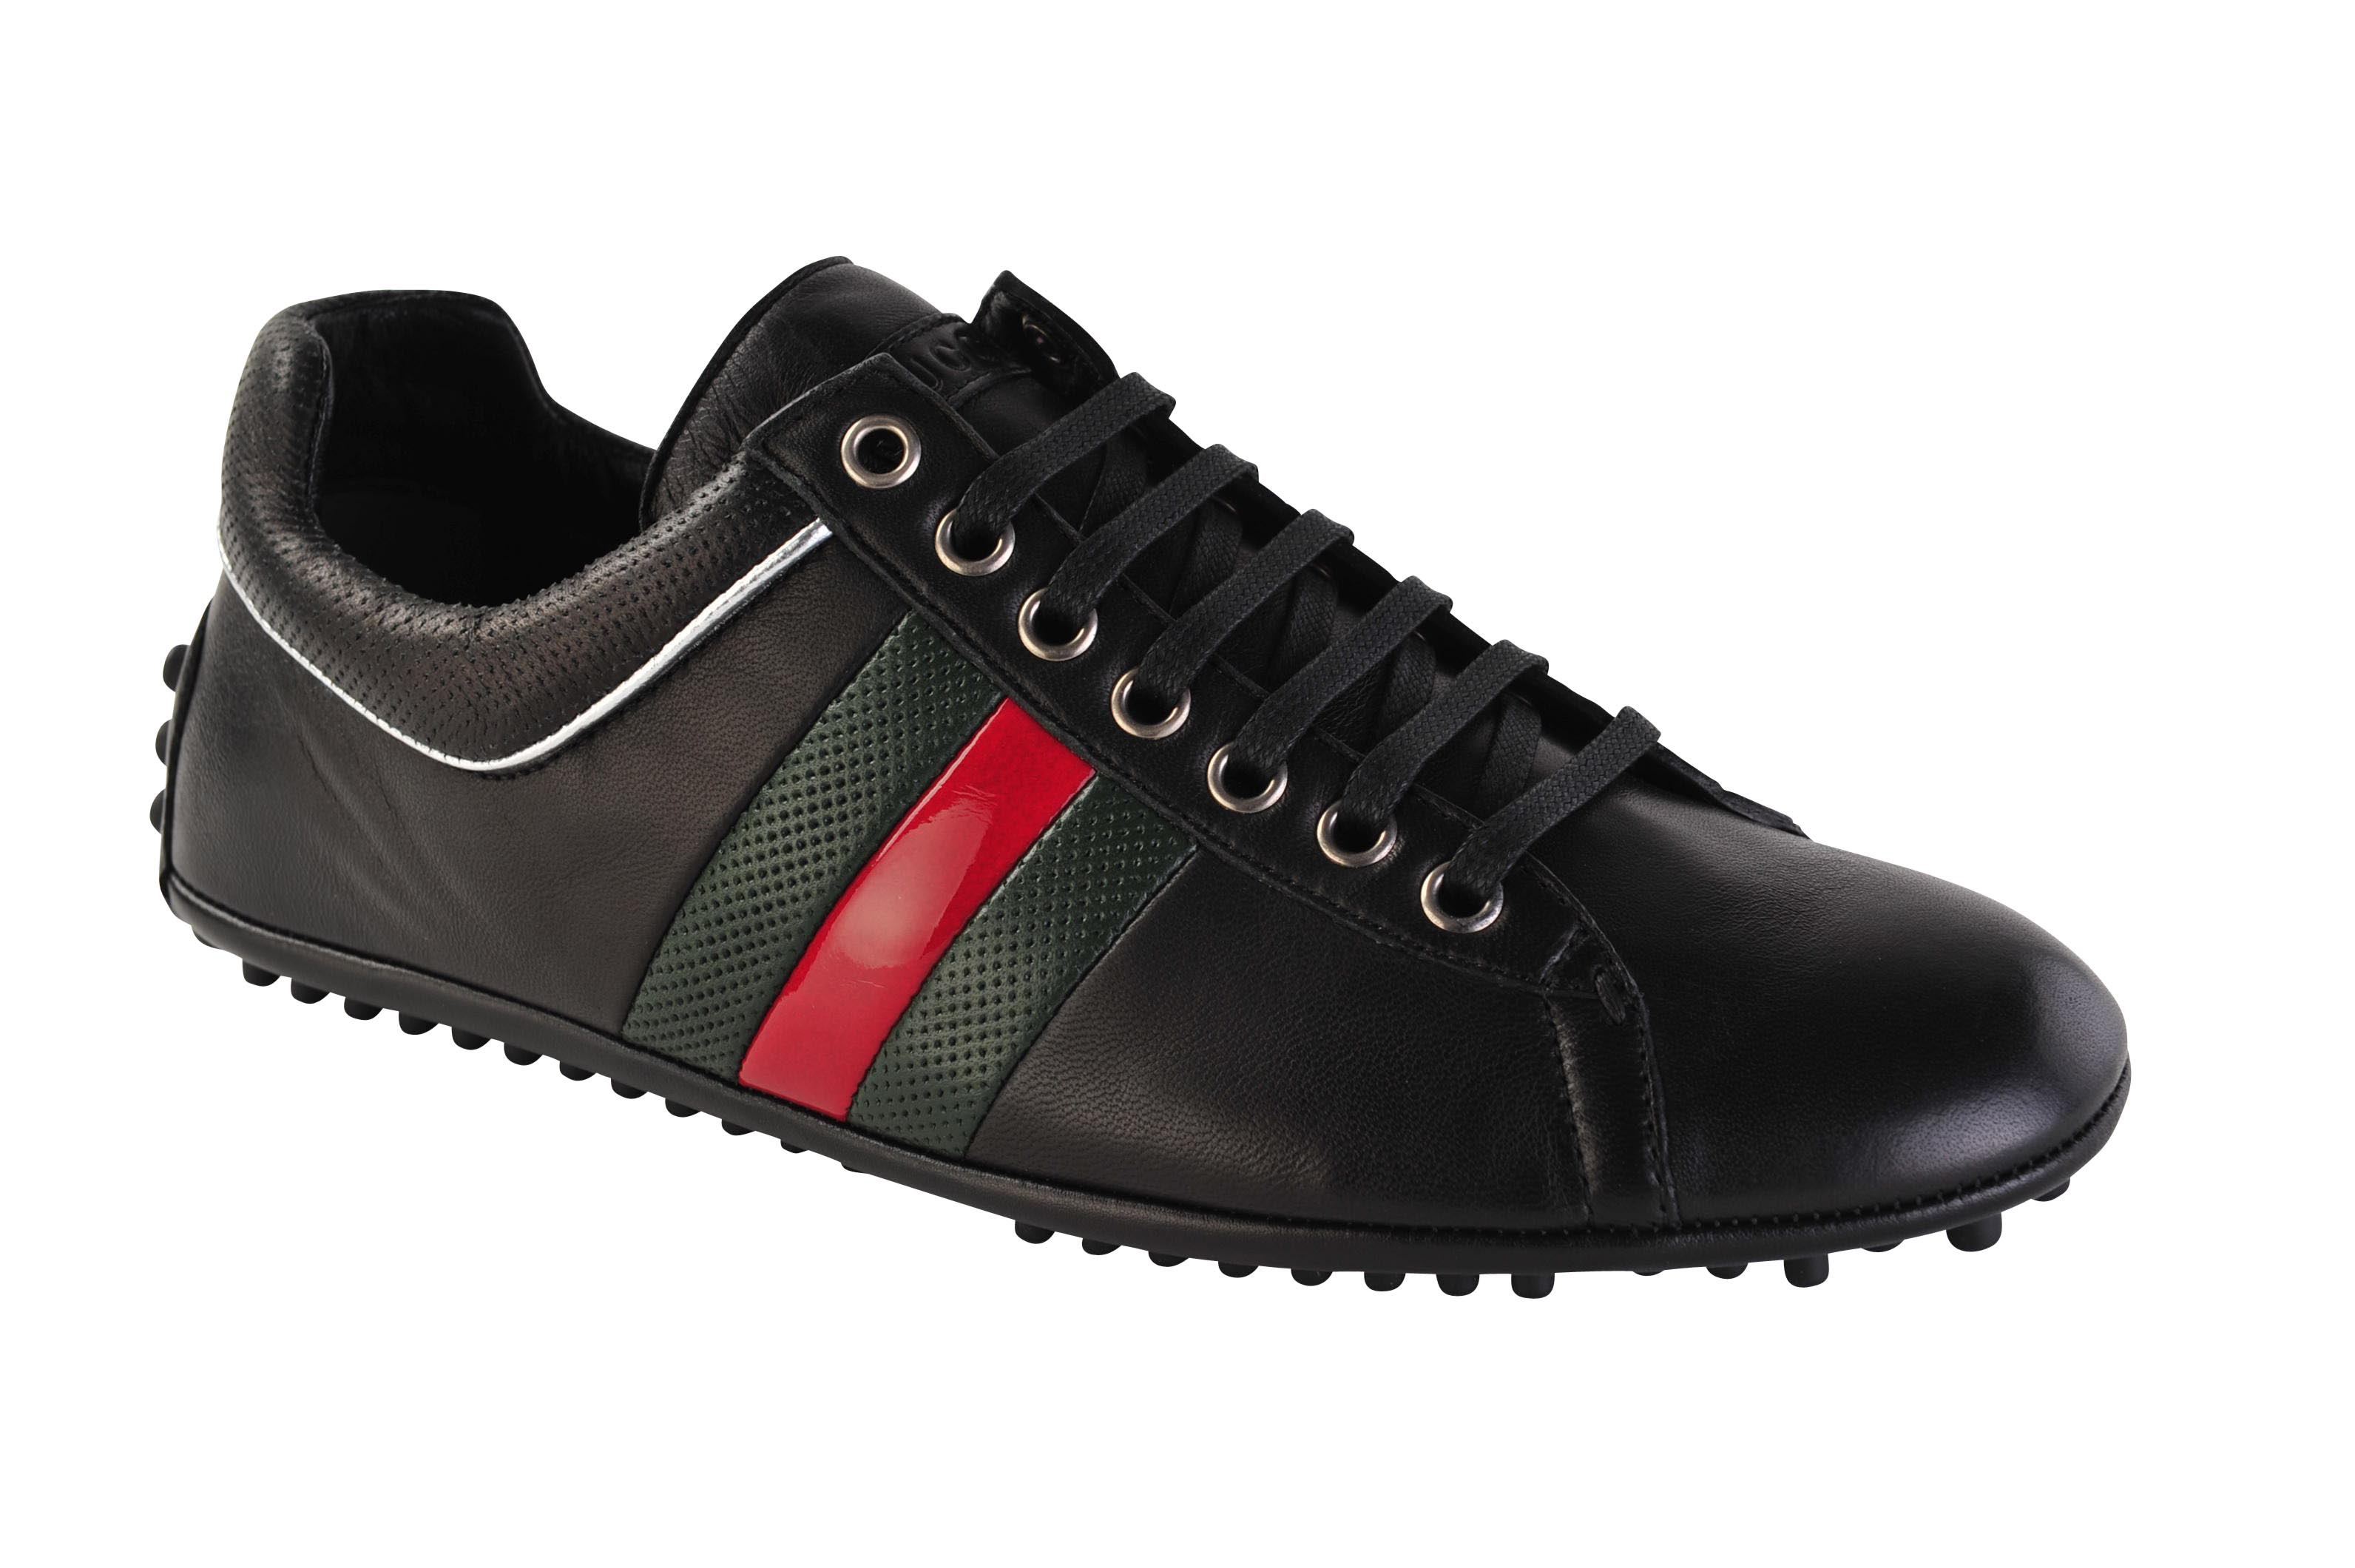 gucci schuhe damen gucci schuhe damen sneaker vom gucci schuhe damen glitzer vom gucci schuhe. Black Bedroom Furniture Sets. Home Design Ideas